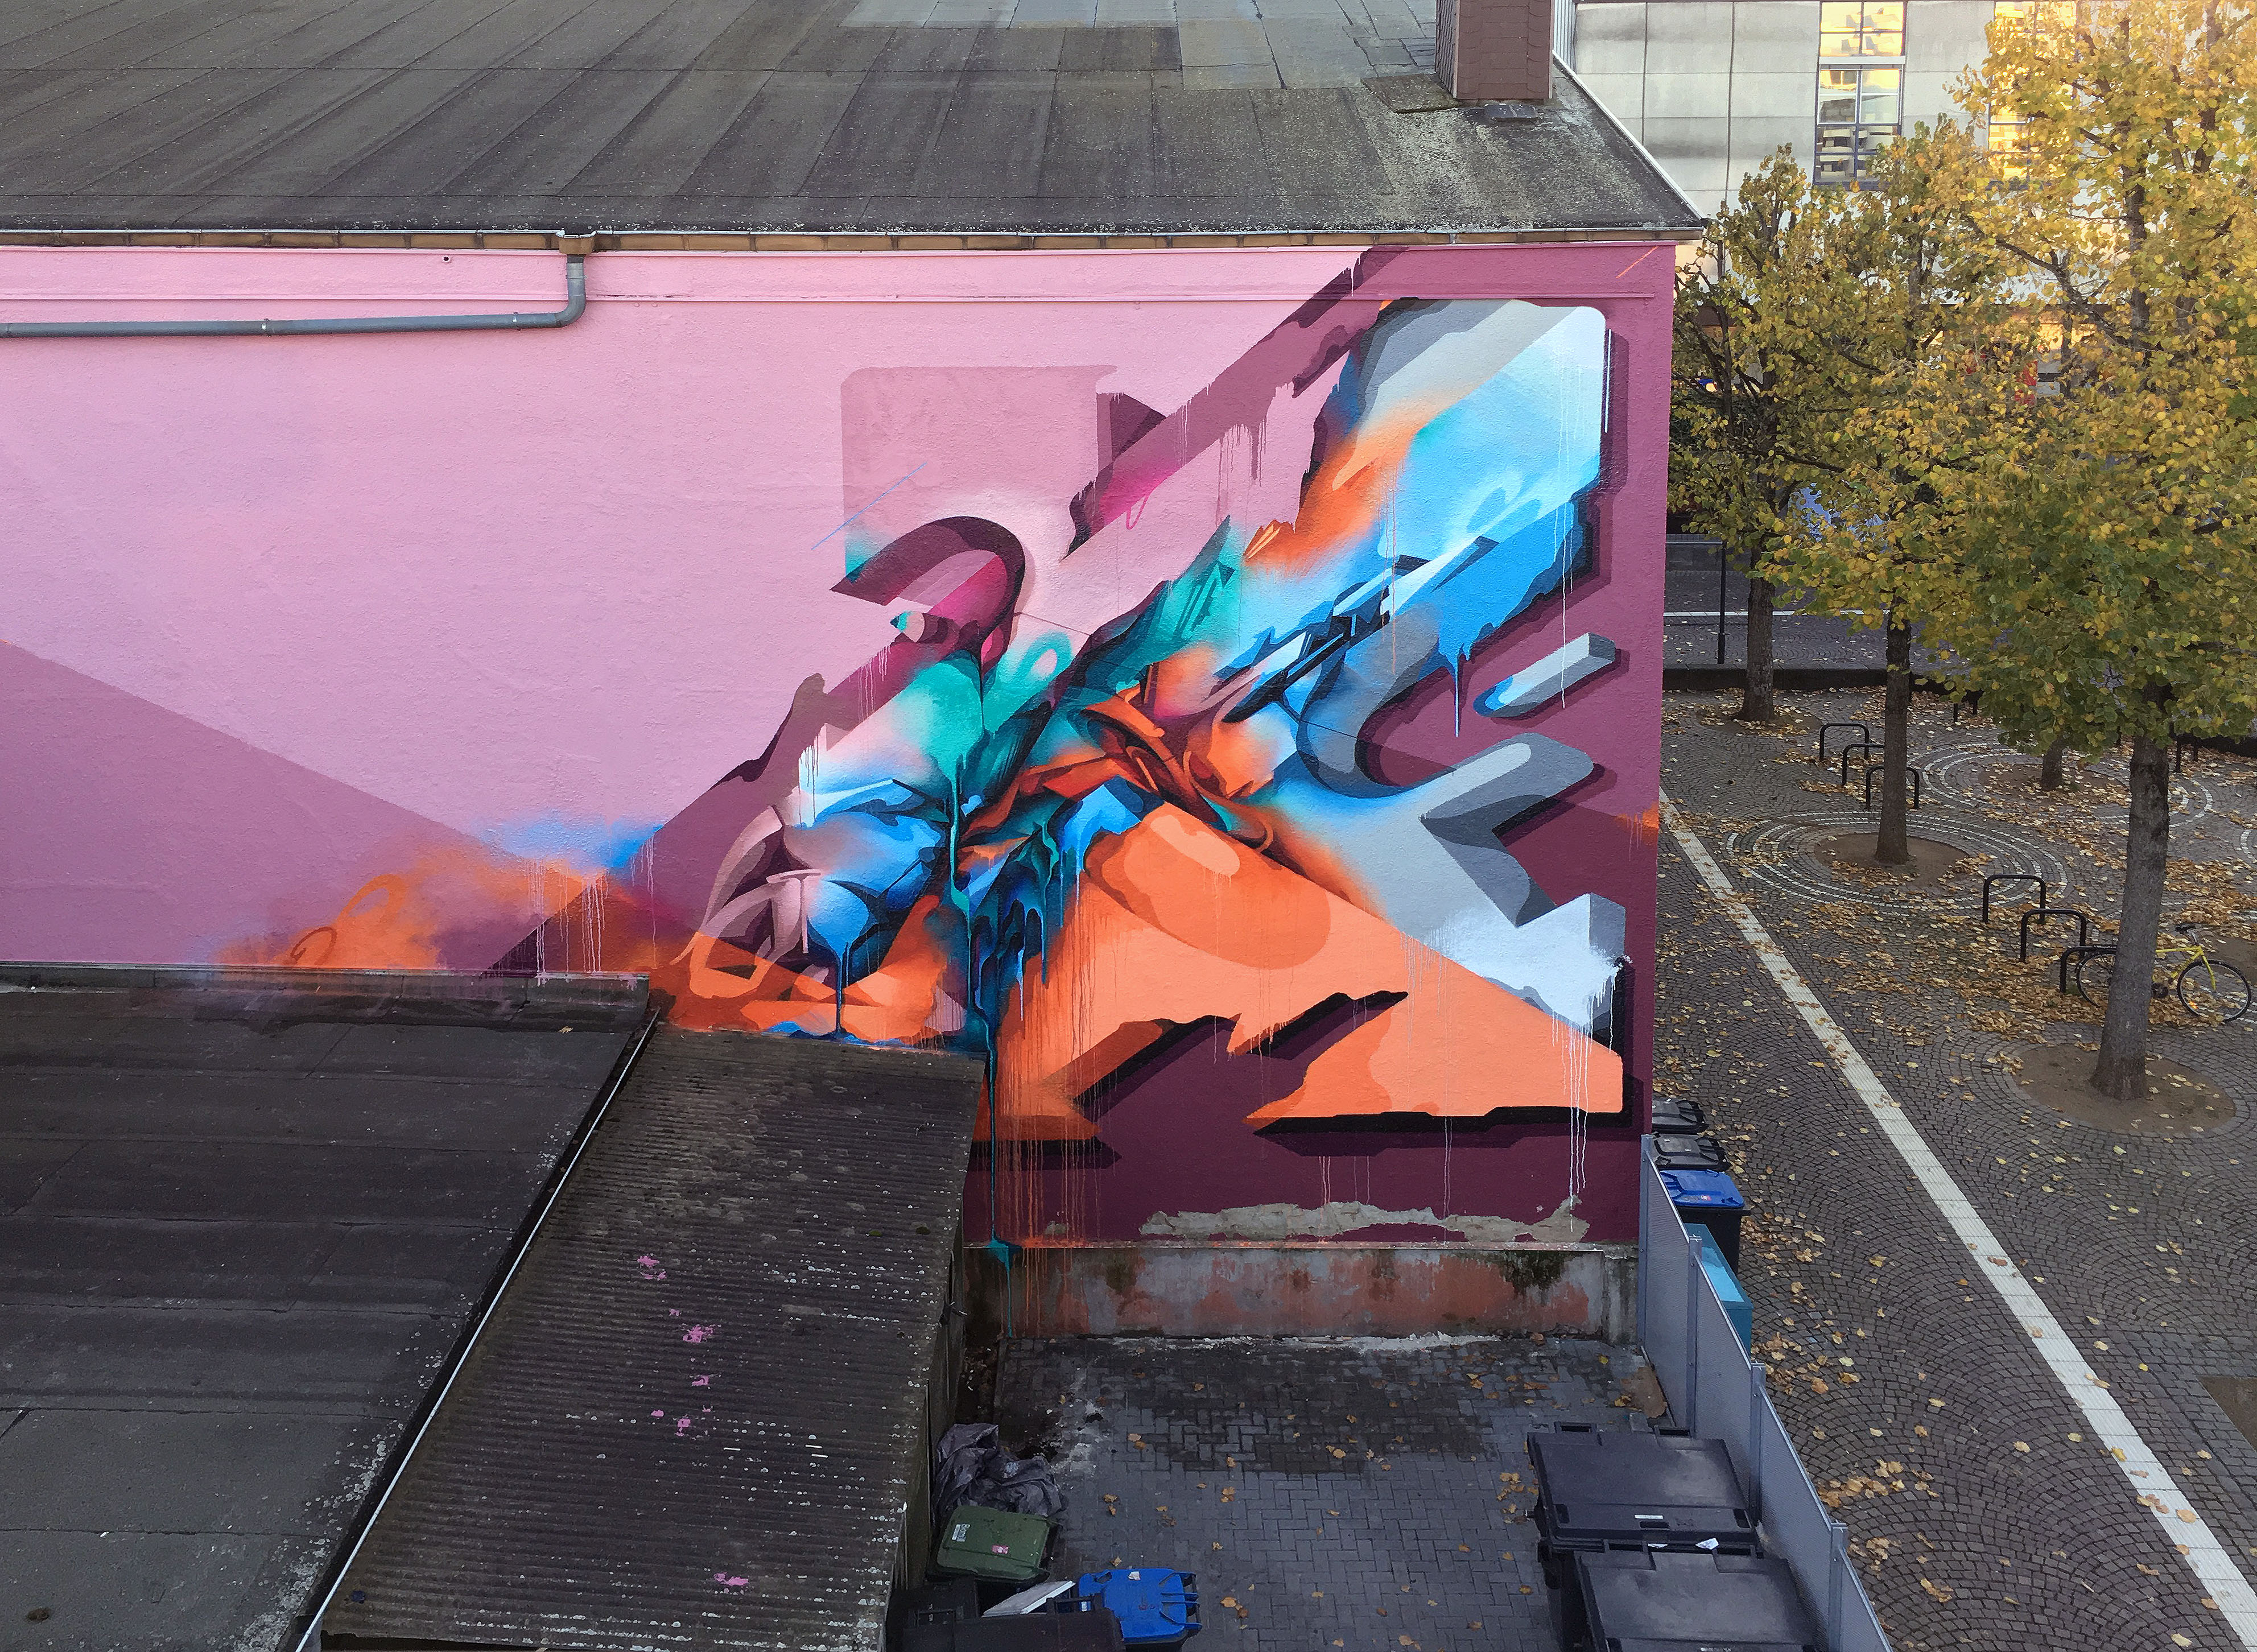 A work by Does - River tales giessen germany mural 4